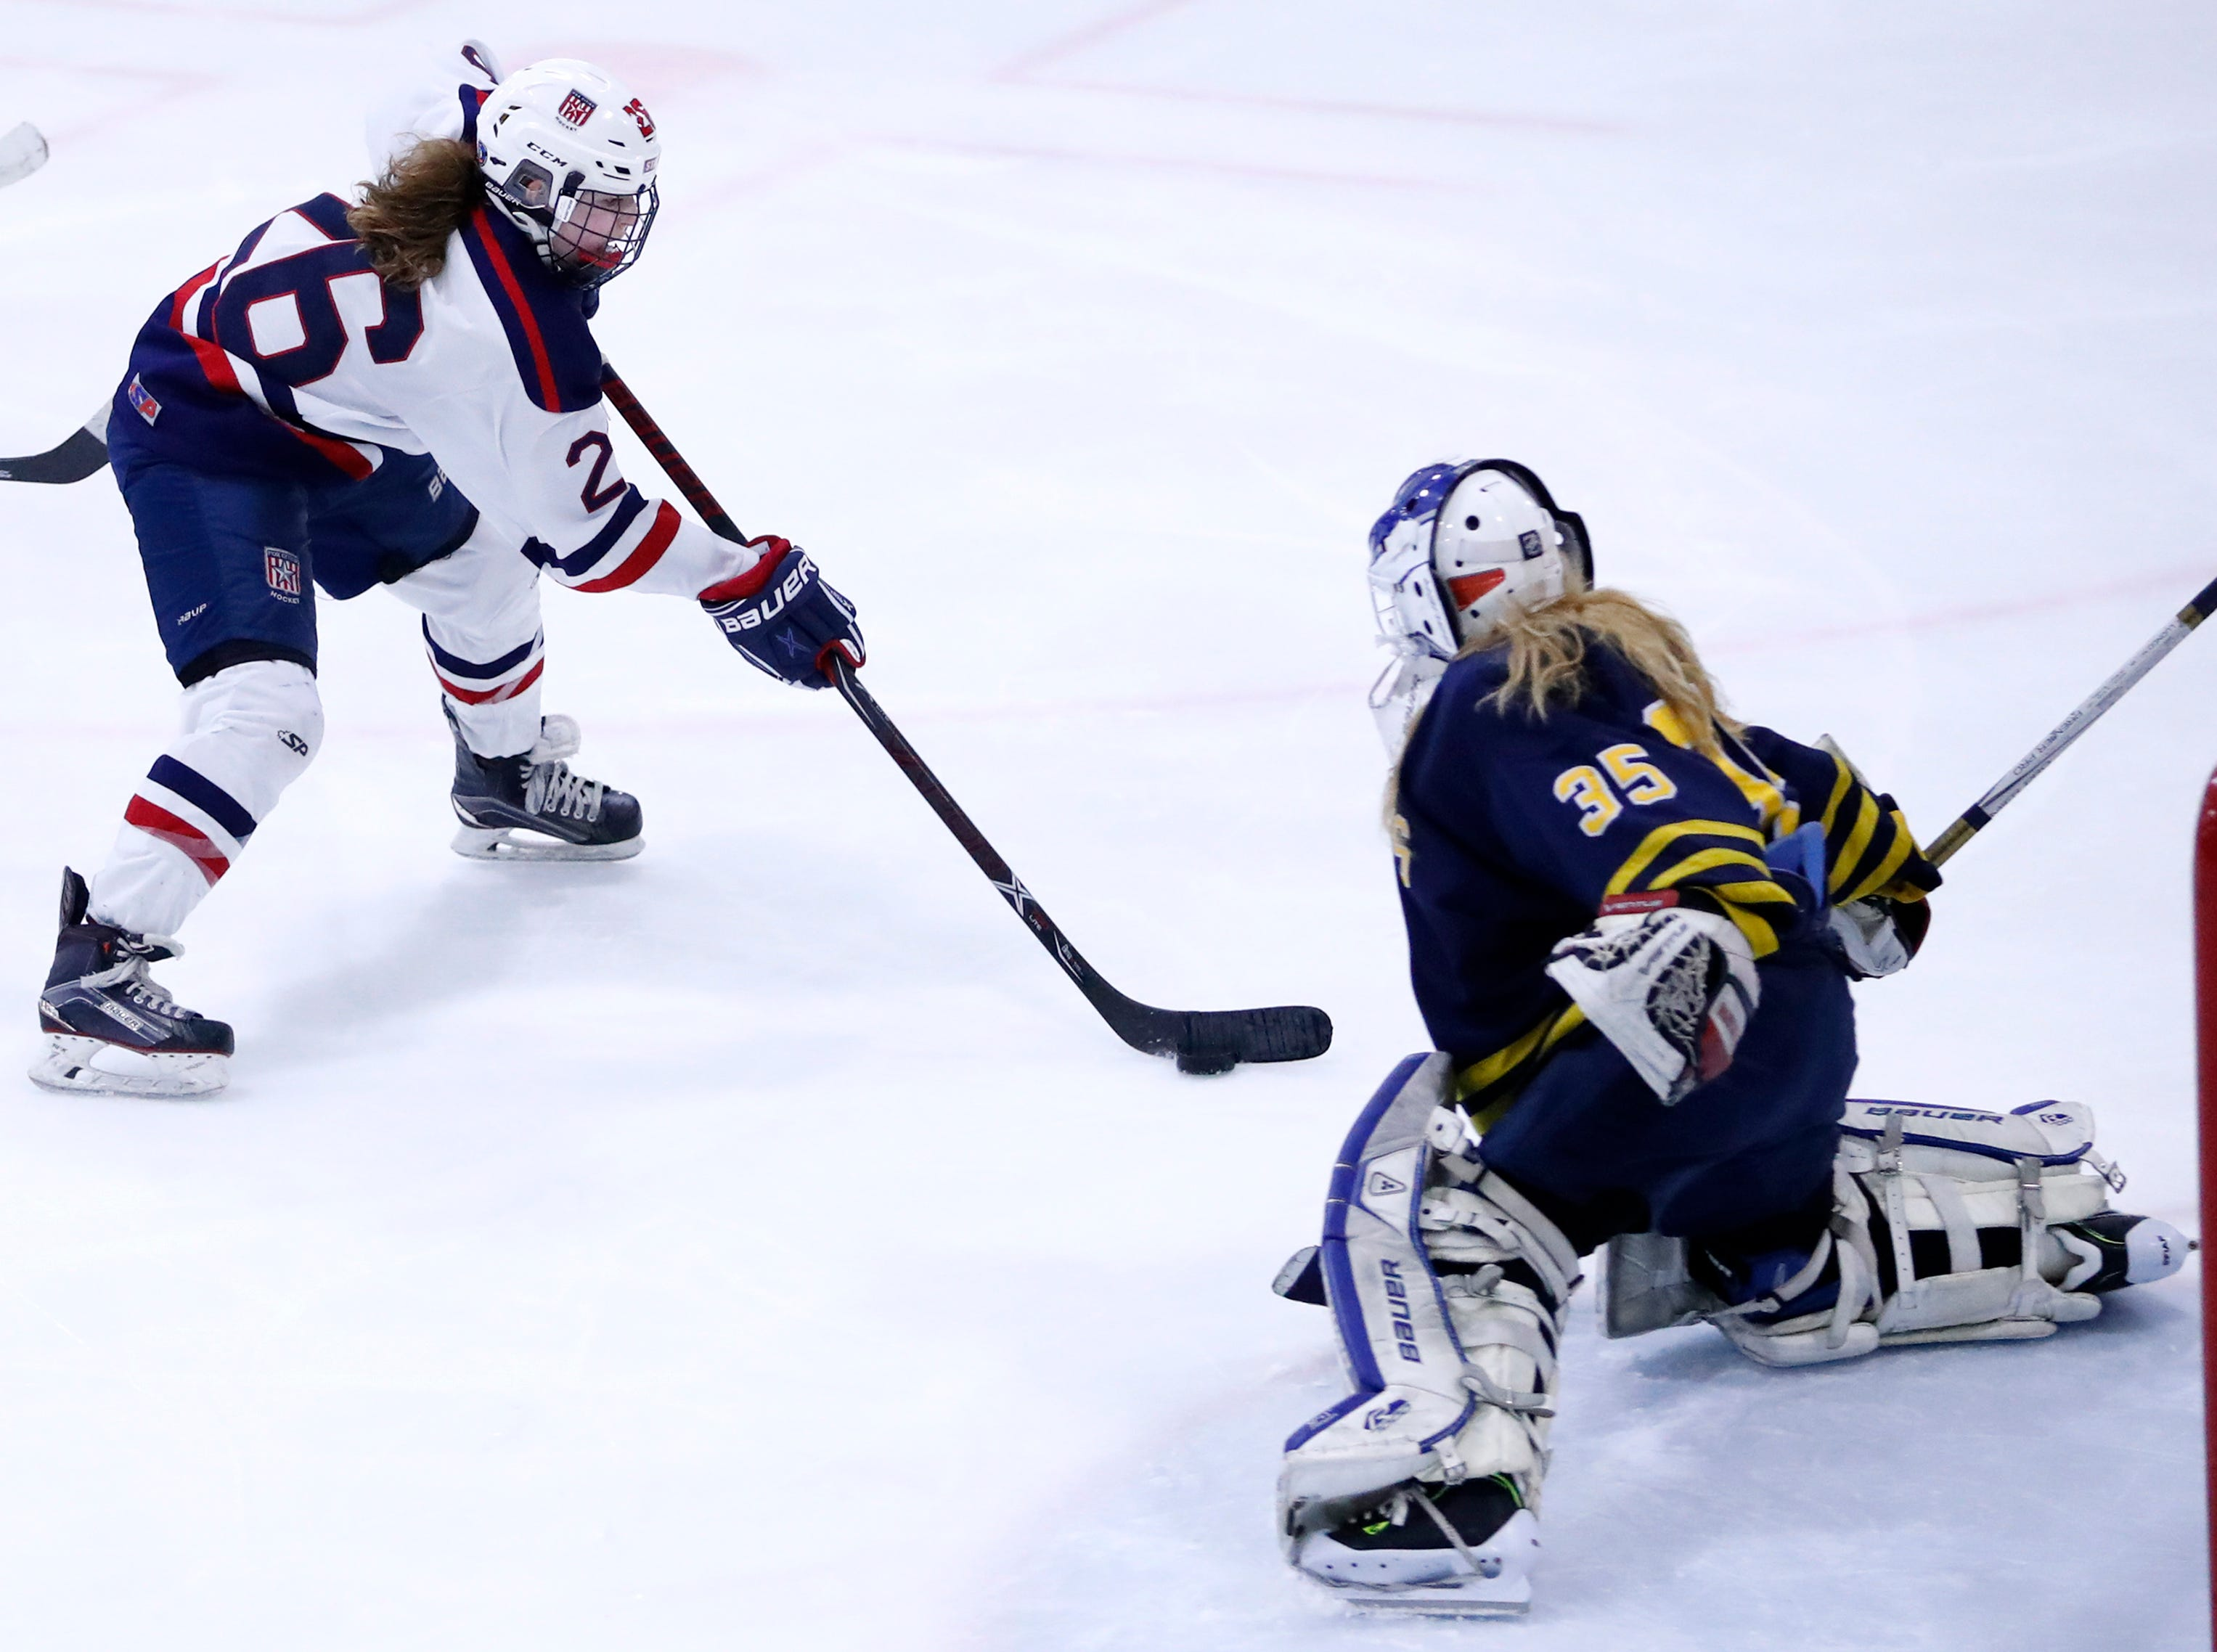 Fox Cities StarsÕ McKayla Zilisch works her way to the goal before scoring on University School Co-opÕs Sami Stommel during their sectional semifinal Tuesday, Feb. 19, 2019, at the Tri-County Ice Arena in Neenah, Wis.Danny Damiani/USA TODAY NETWORK-Wisconsin